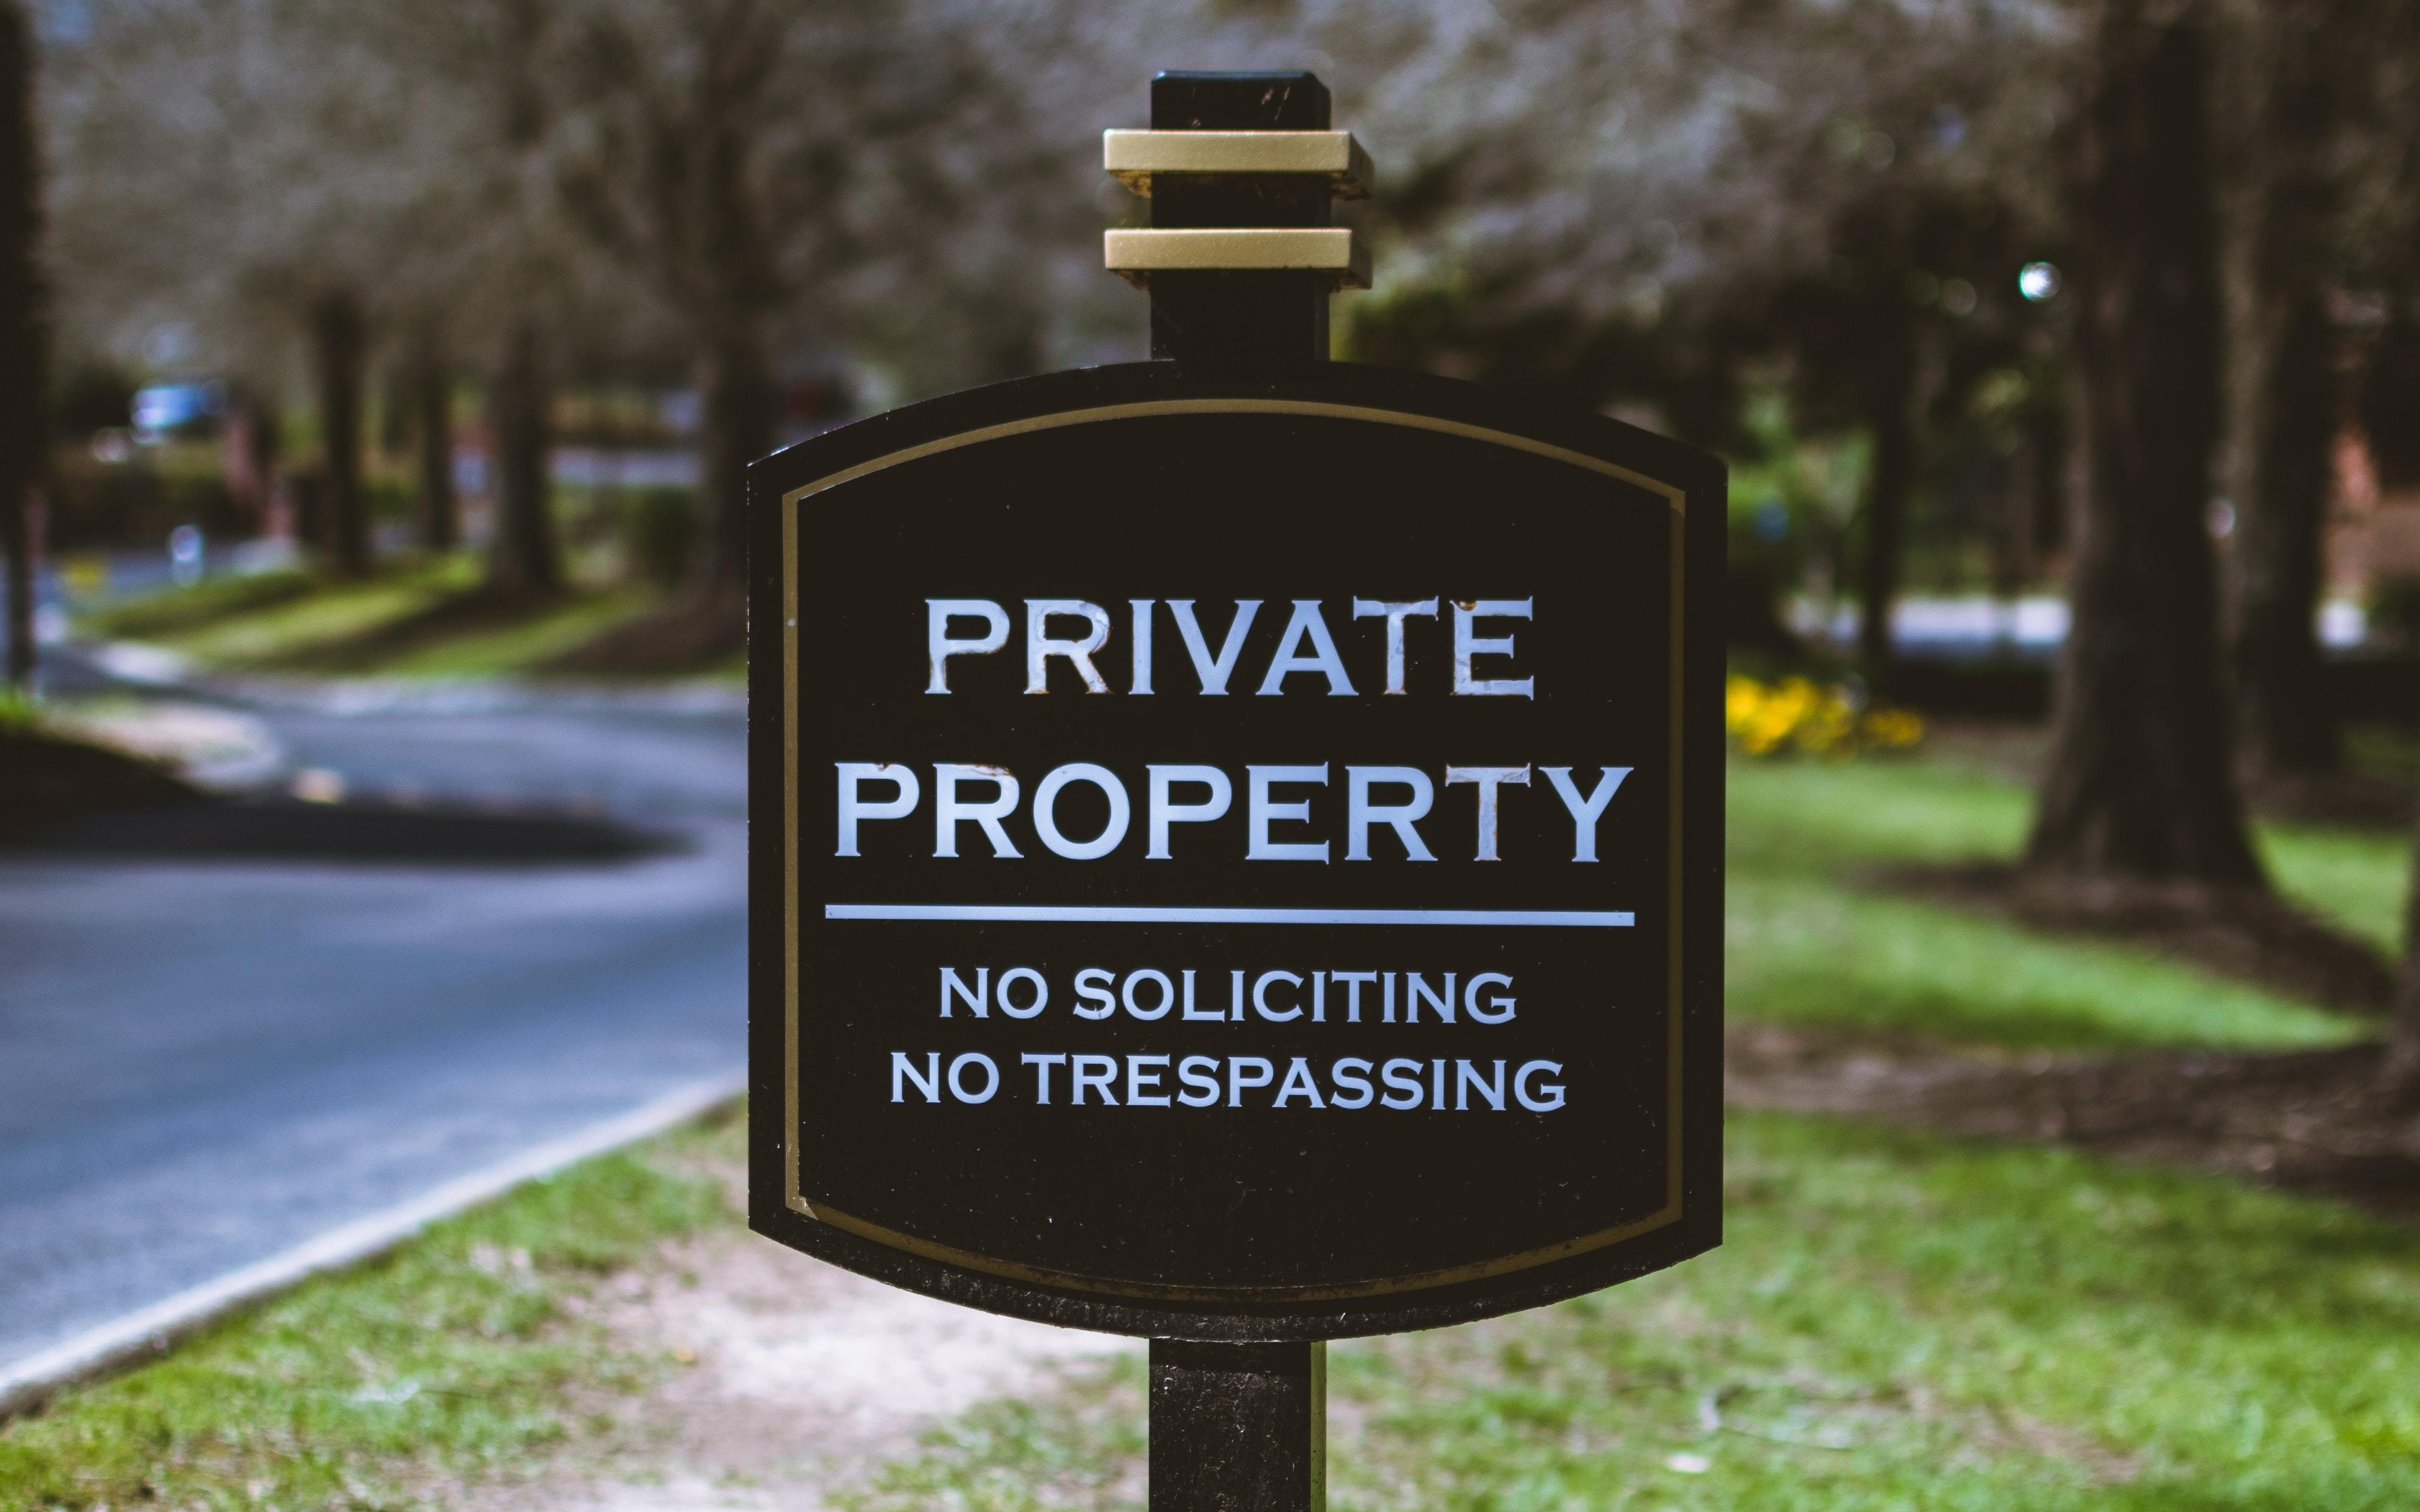 Private Property sign, symbolizing the exclusive aura around PE investments